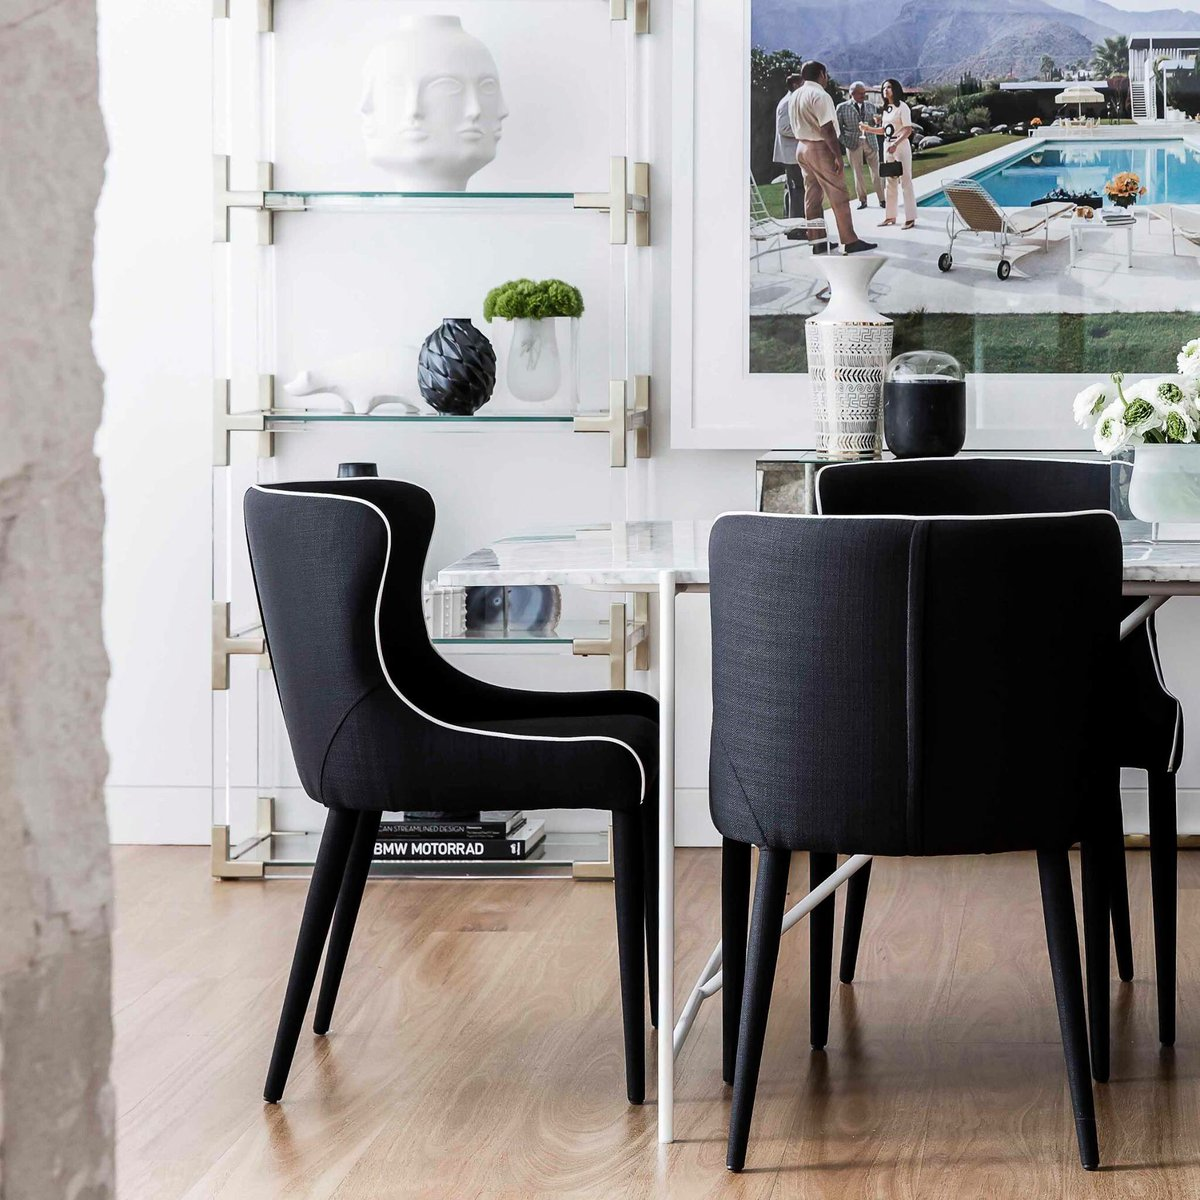 Coco Republic On Twitter A Buyer Favourite The Markson Dining Chair Is Available In Black Ivory And Grey Cocorepublic Interiors